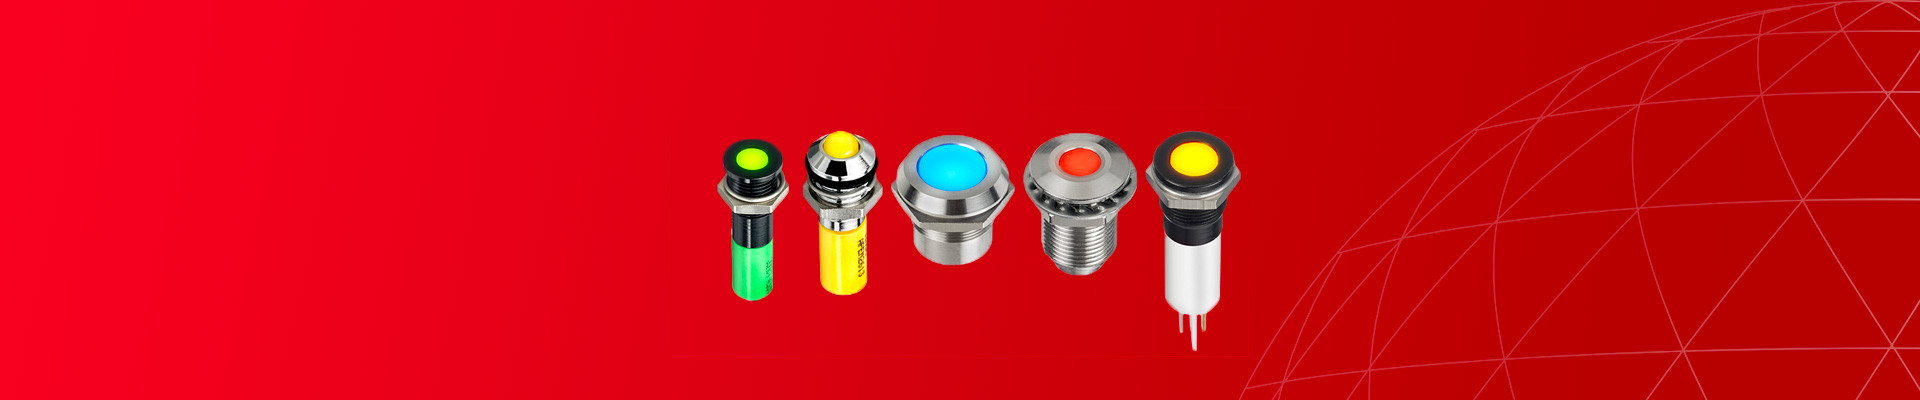 APEMs new range of RGB LED indicators shine brilliant and bright